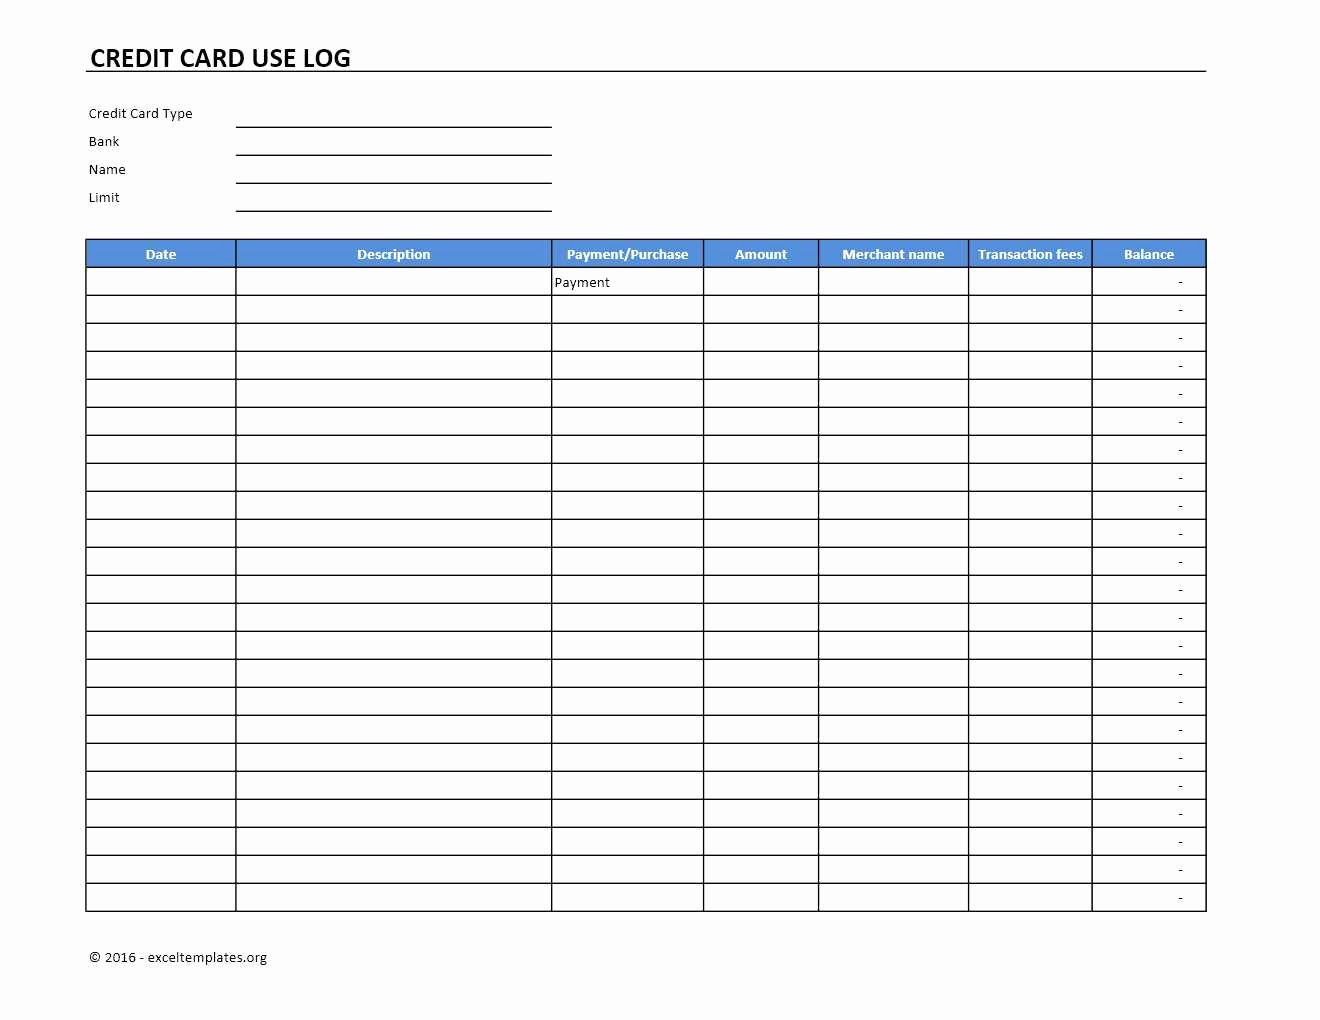 Credit Card Payment Tracking Spreadsheet Elegant Credit Card Use Log Template Excel Templates